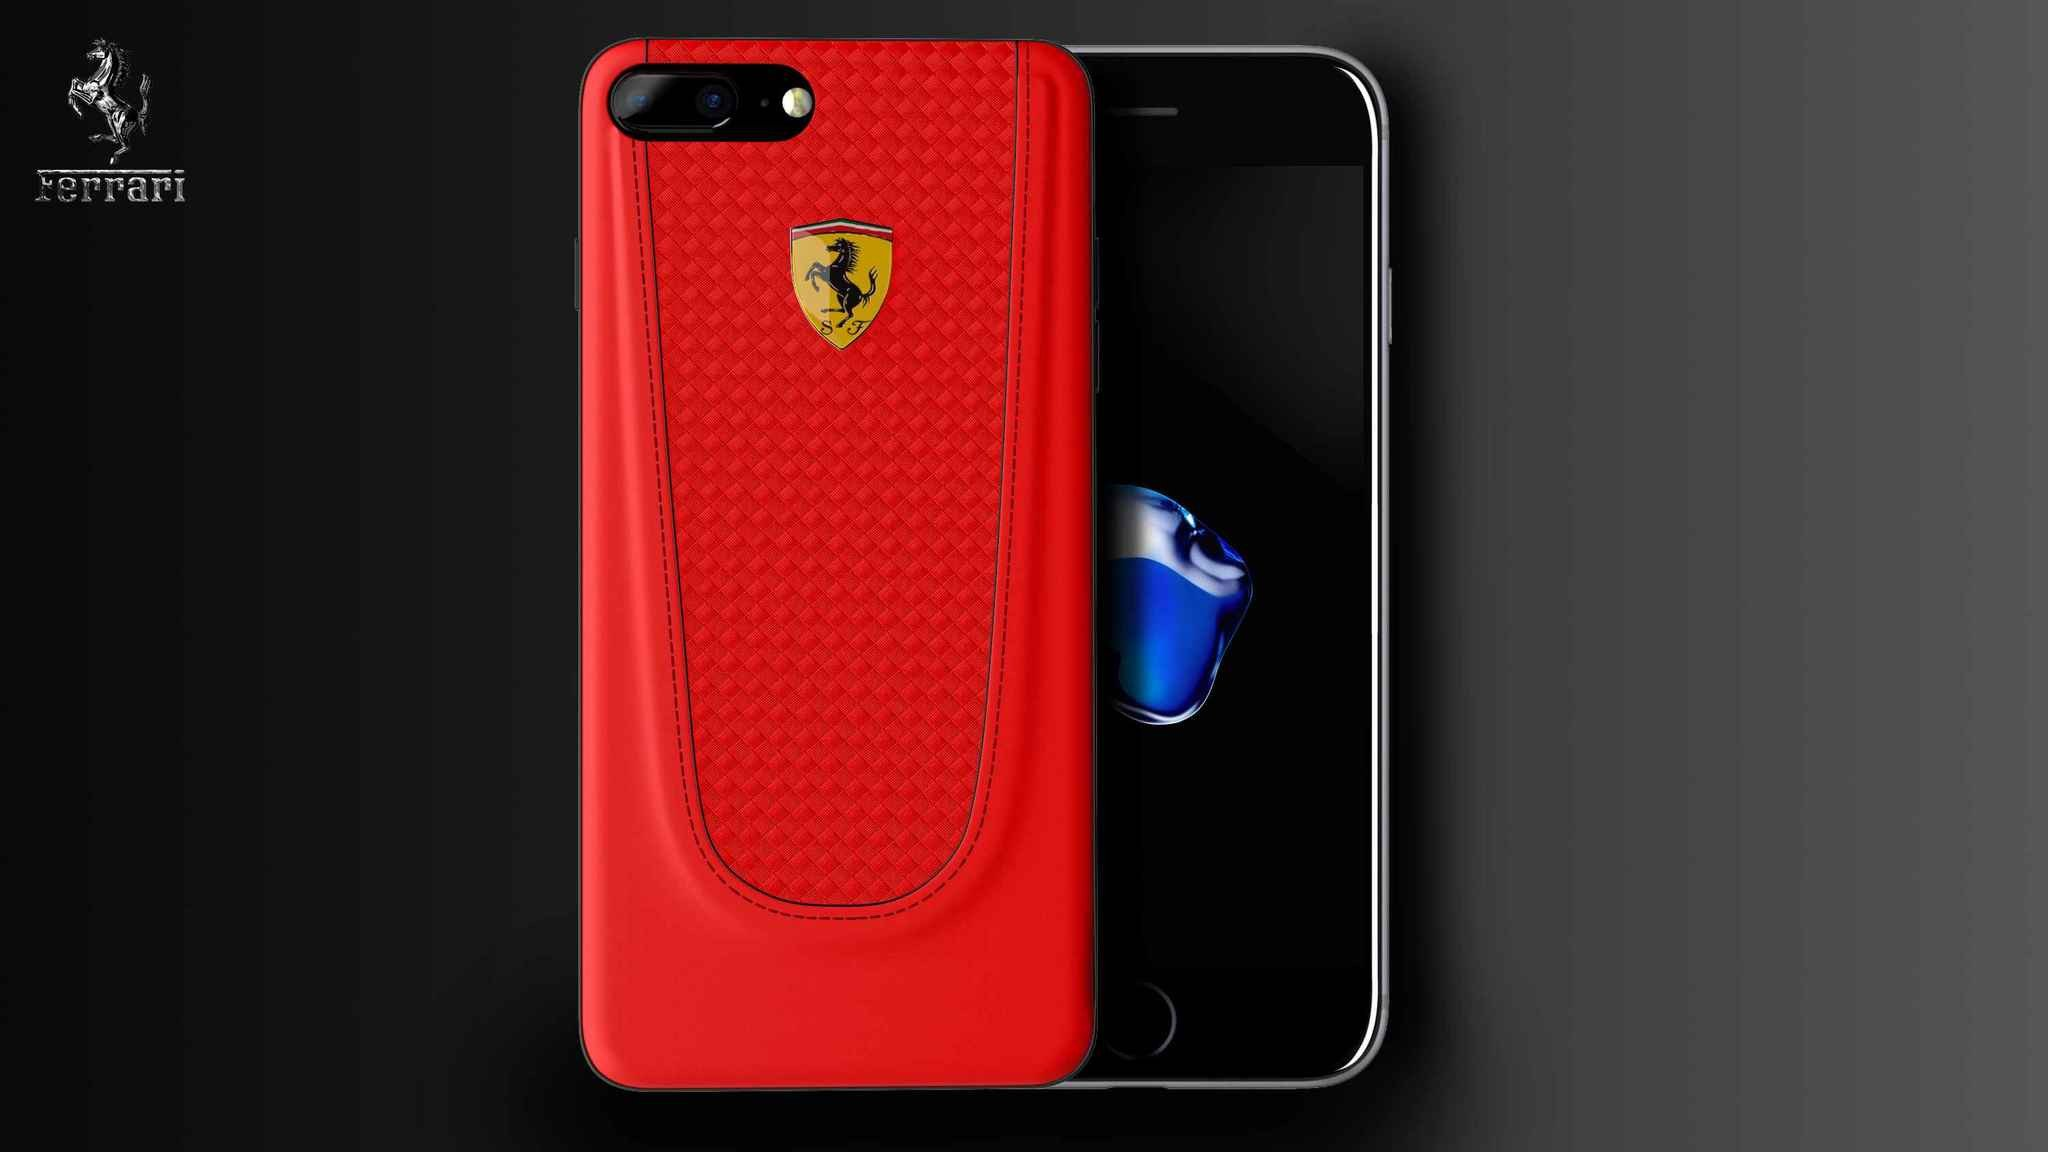 Ferrari ® Apple iPhone 7 Plus Official California T Series ...